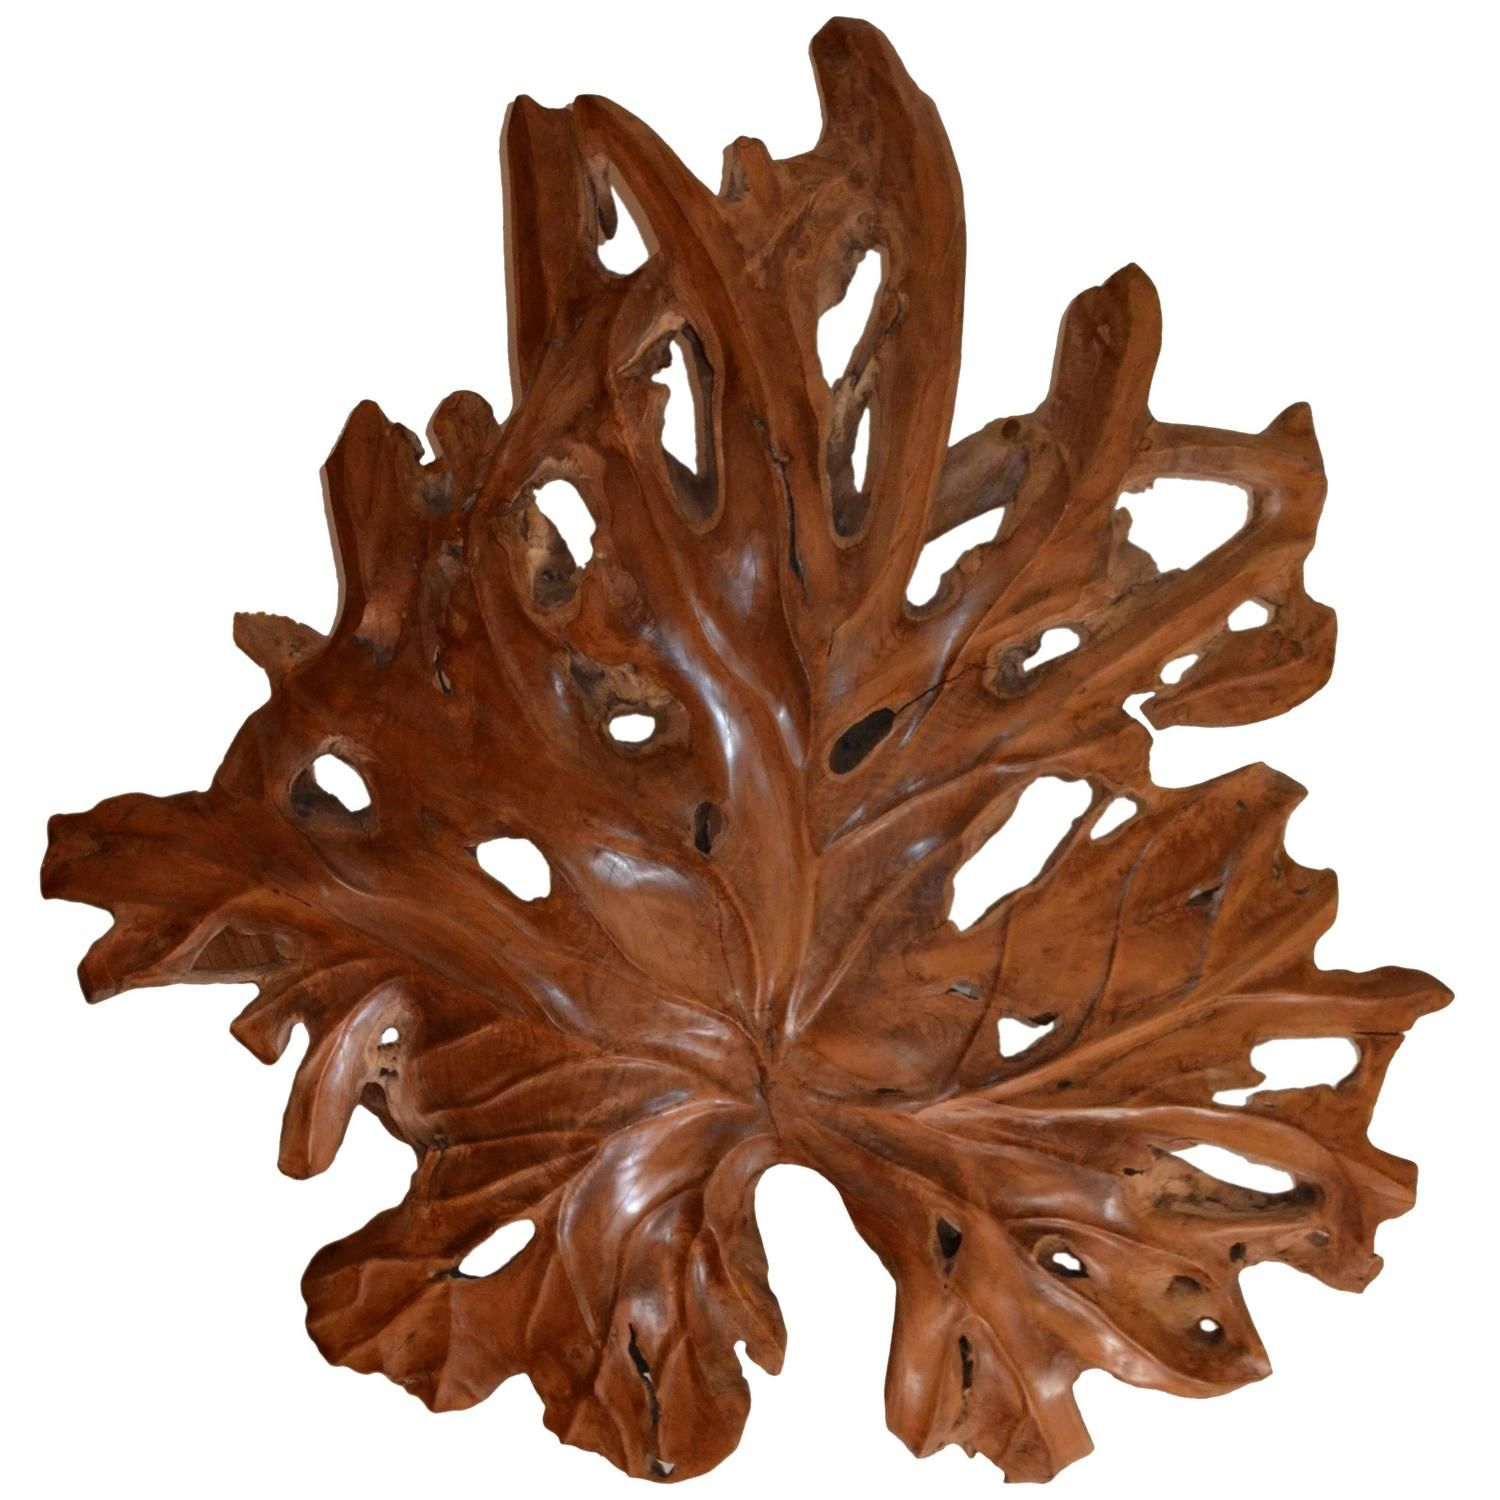 Andrianna shamaris giant organic teak wood leaf sculpture teak